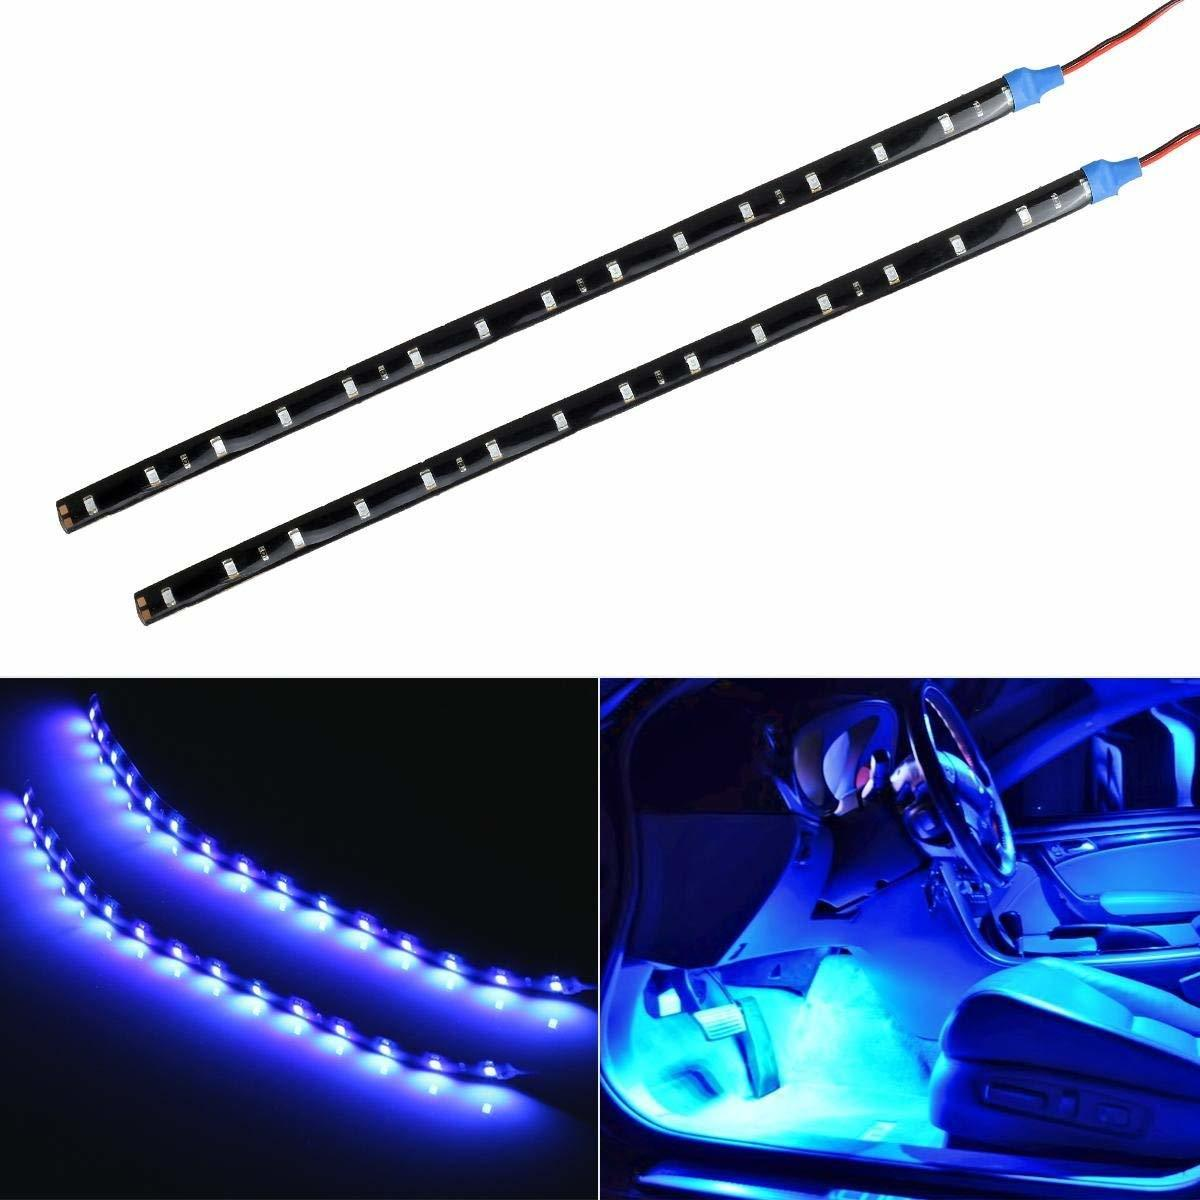 1PC Car Strip Light 15 LED Motorcycle Flexible Bar 30CM 3528 SMD Under Tube Underglow Underbody Boat Atmosphere Decorative Lamp car 8 led underbody colorful decorative light dc 12v